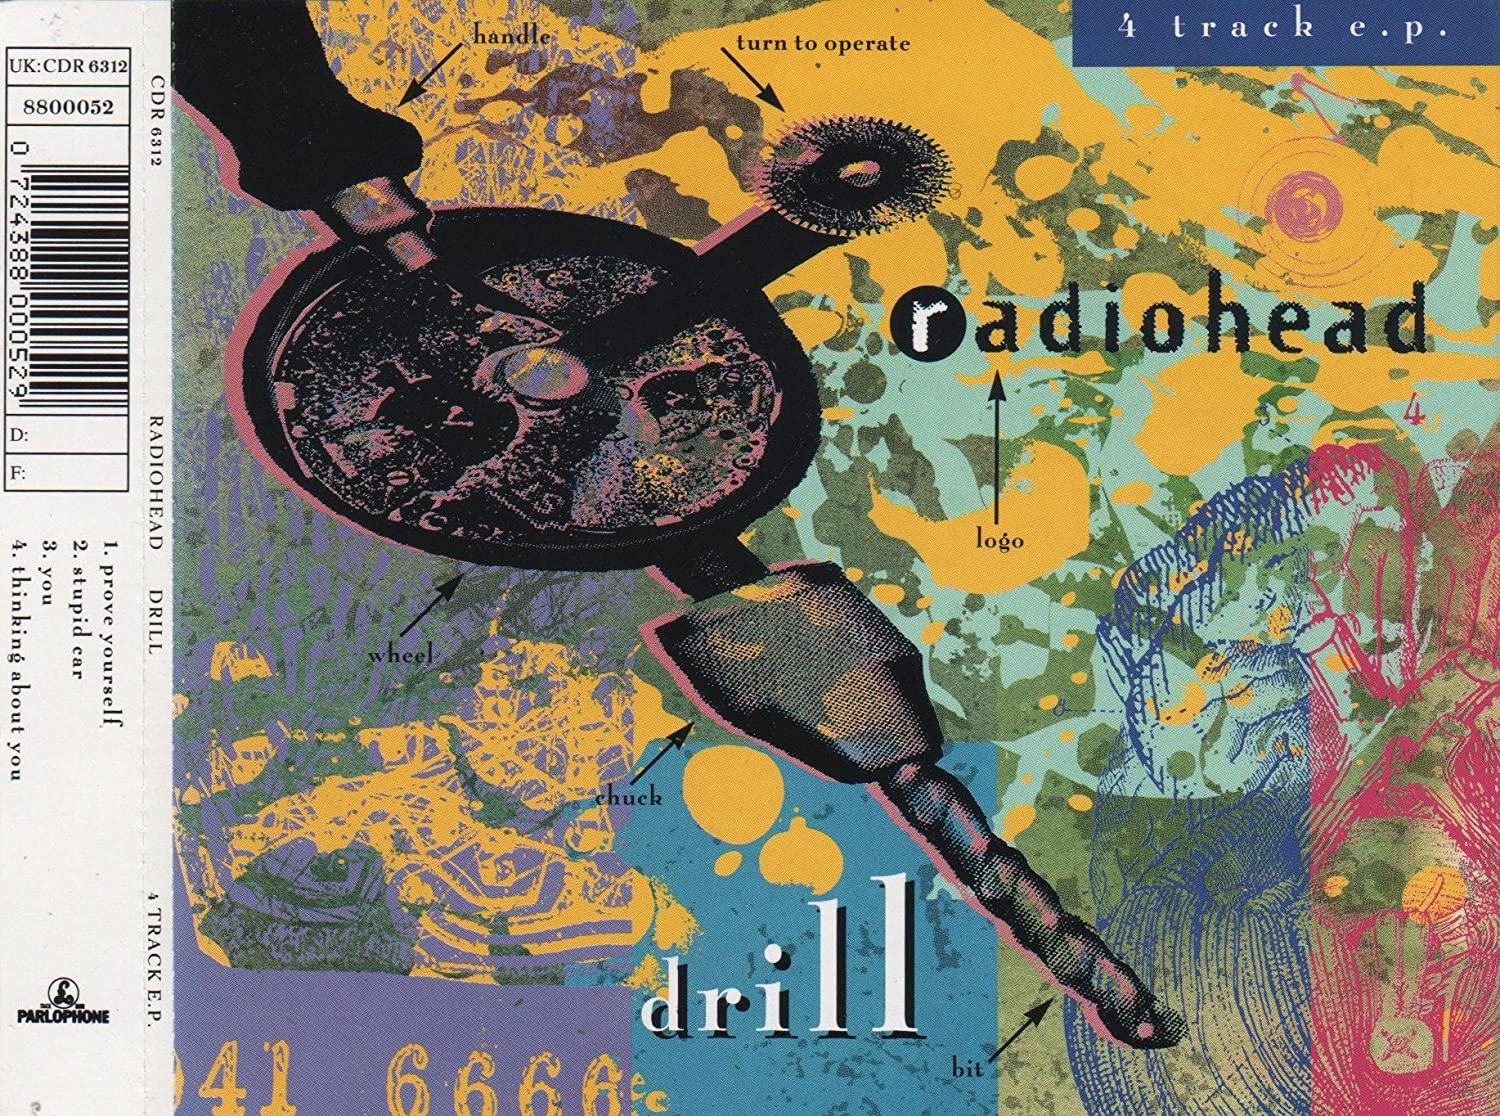 Radiohead The Drill EP